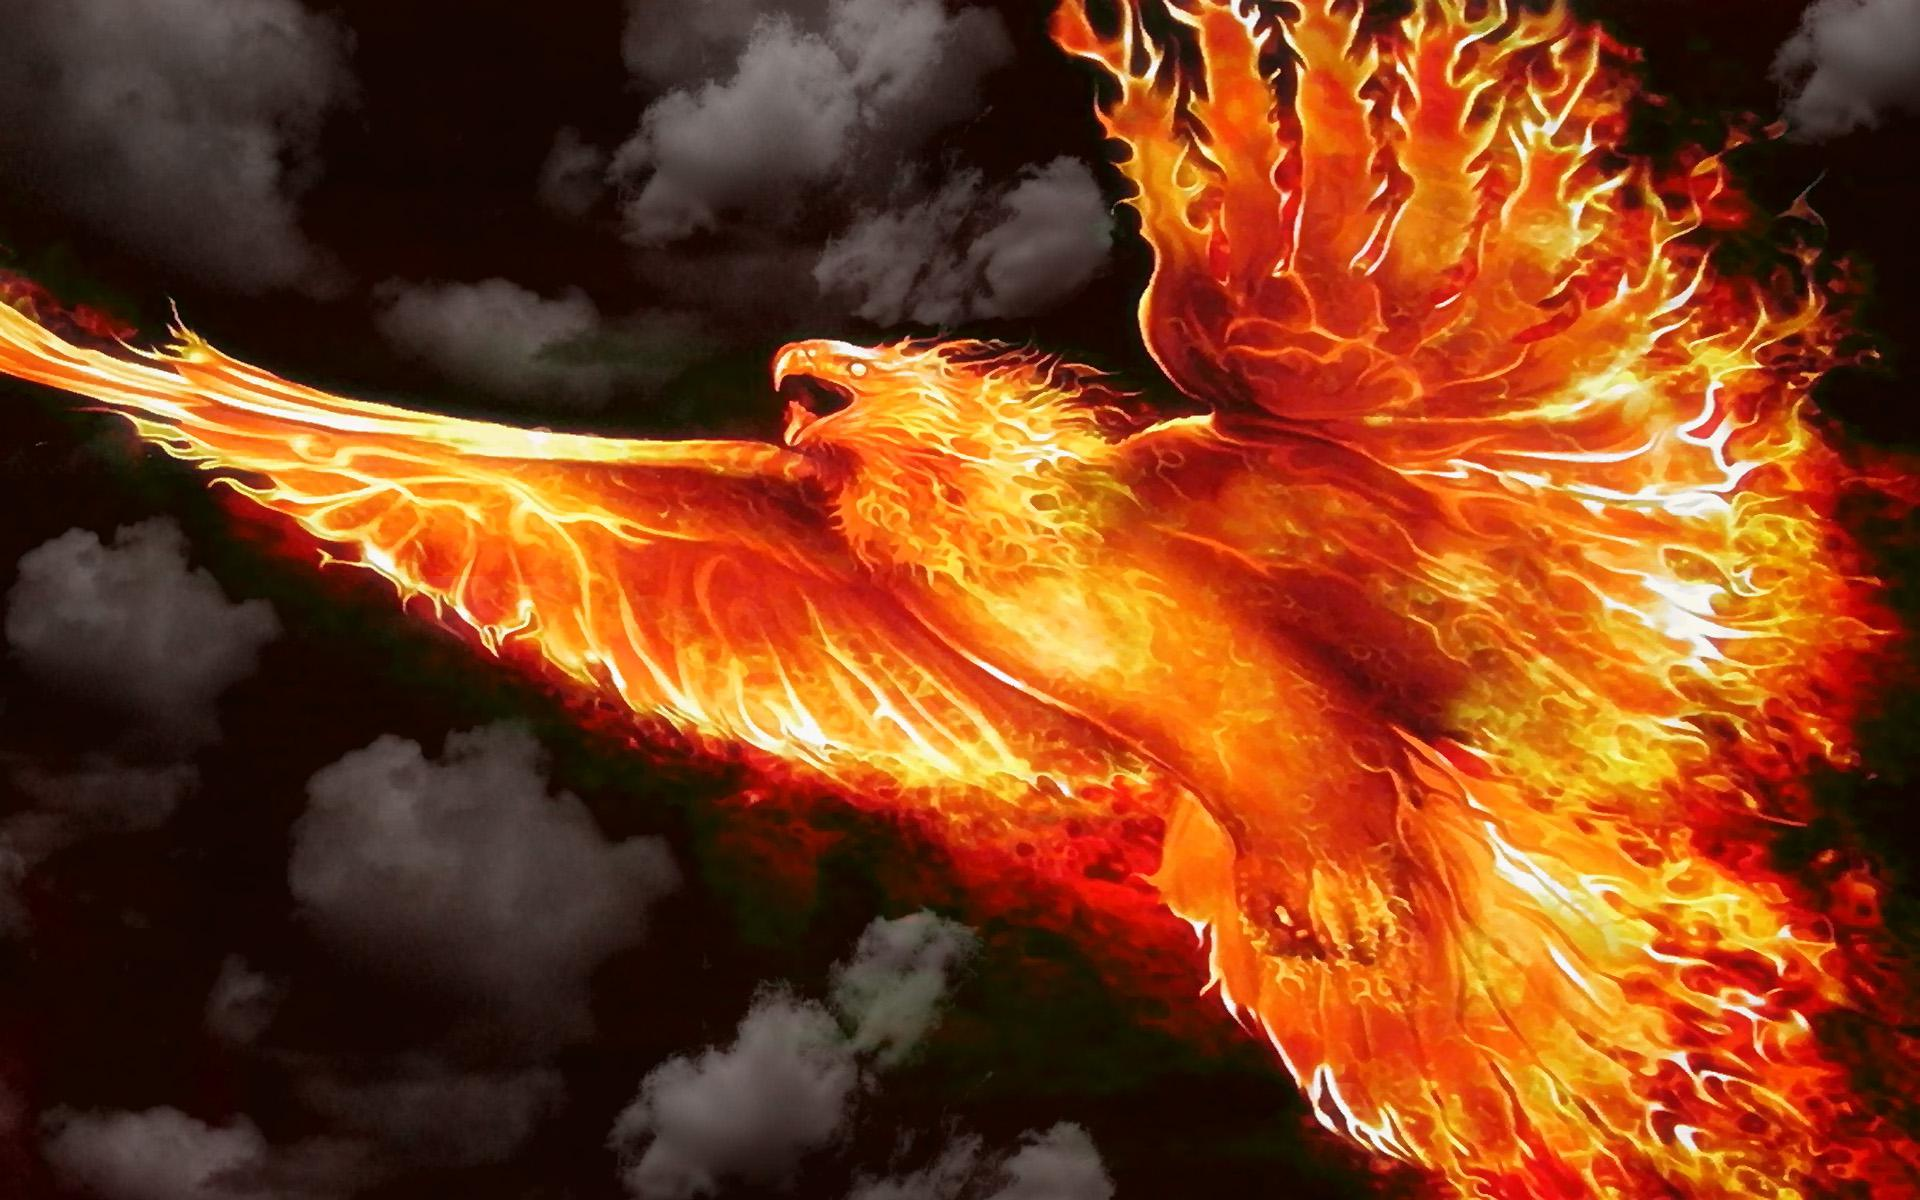 Firebird Wallpaper Wallpapersafari